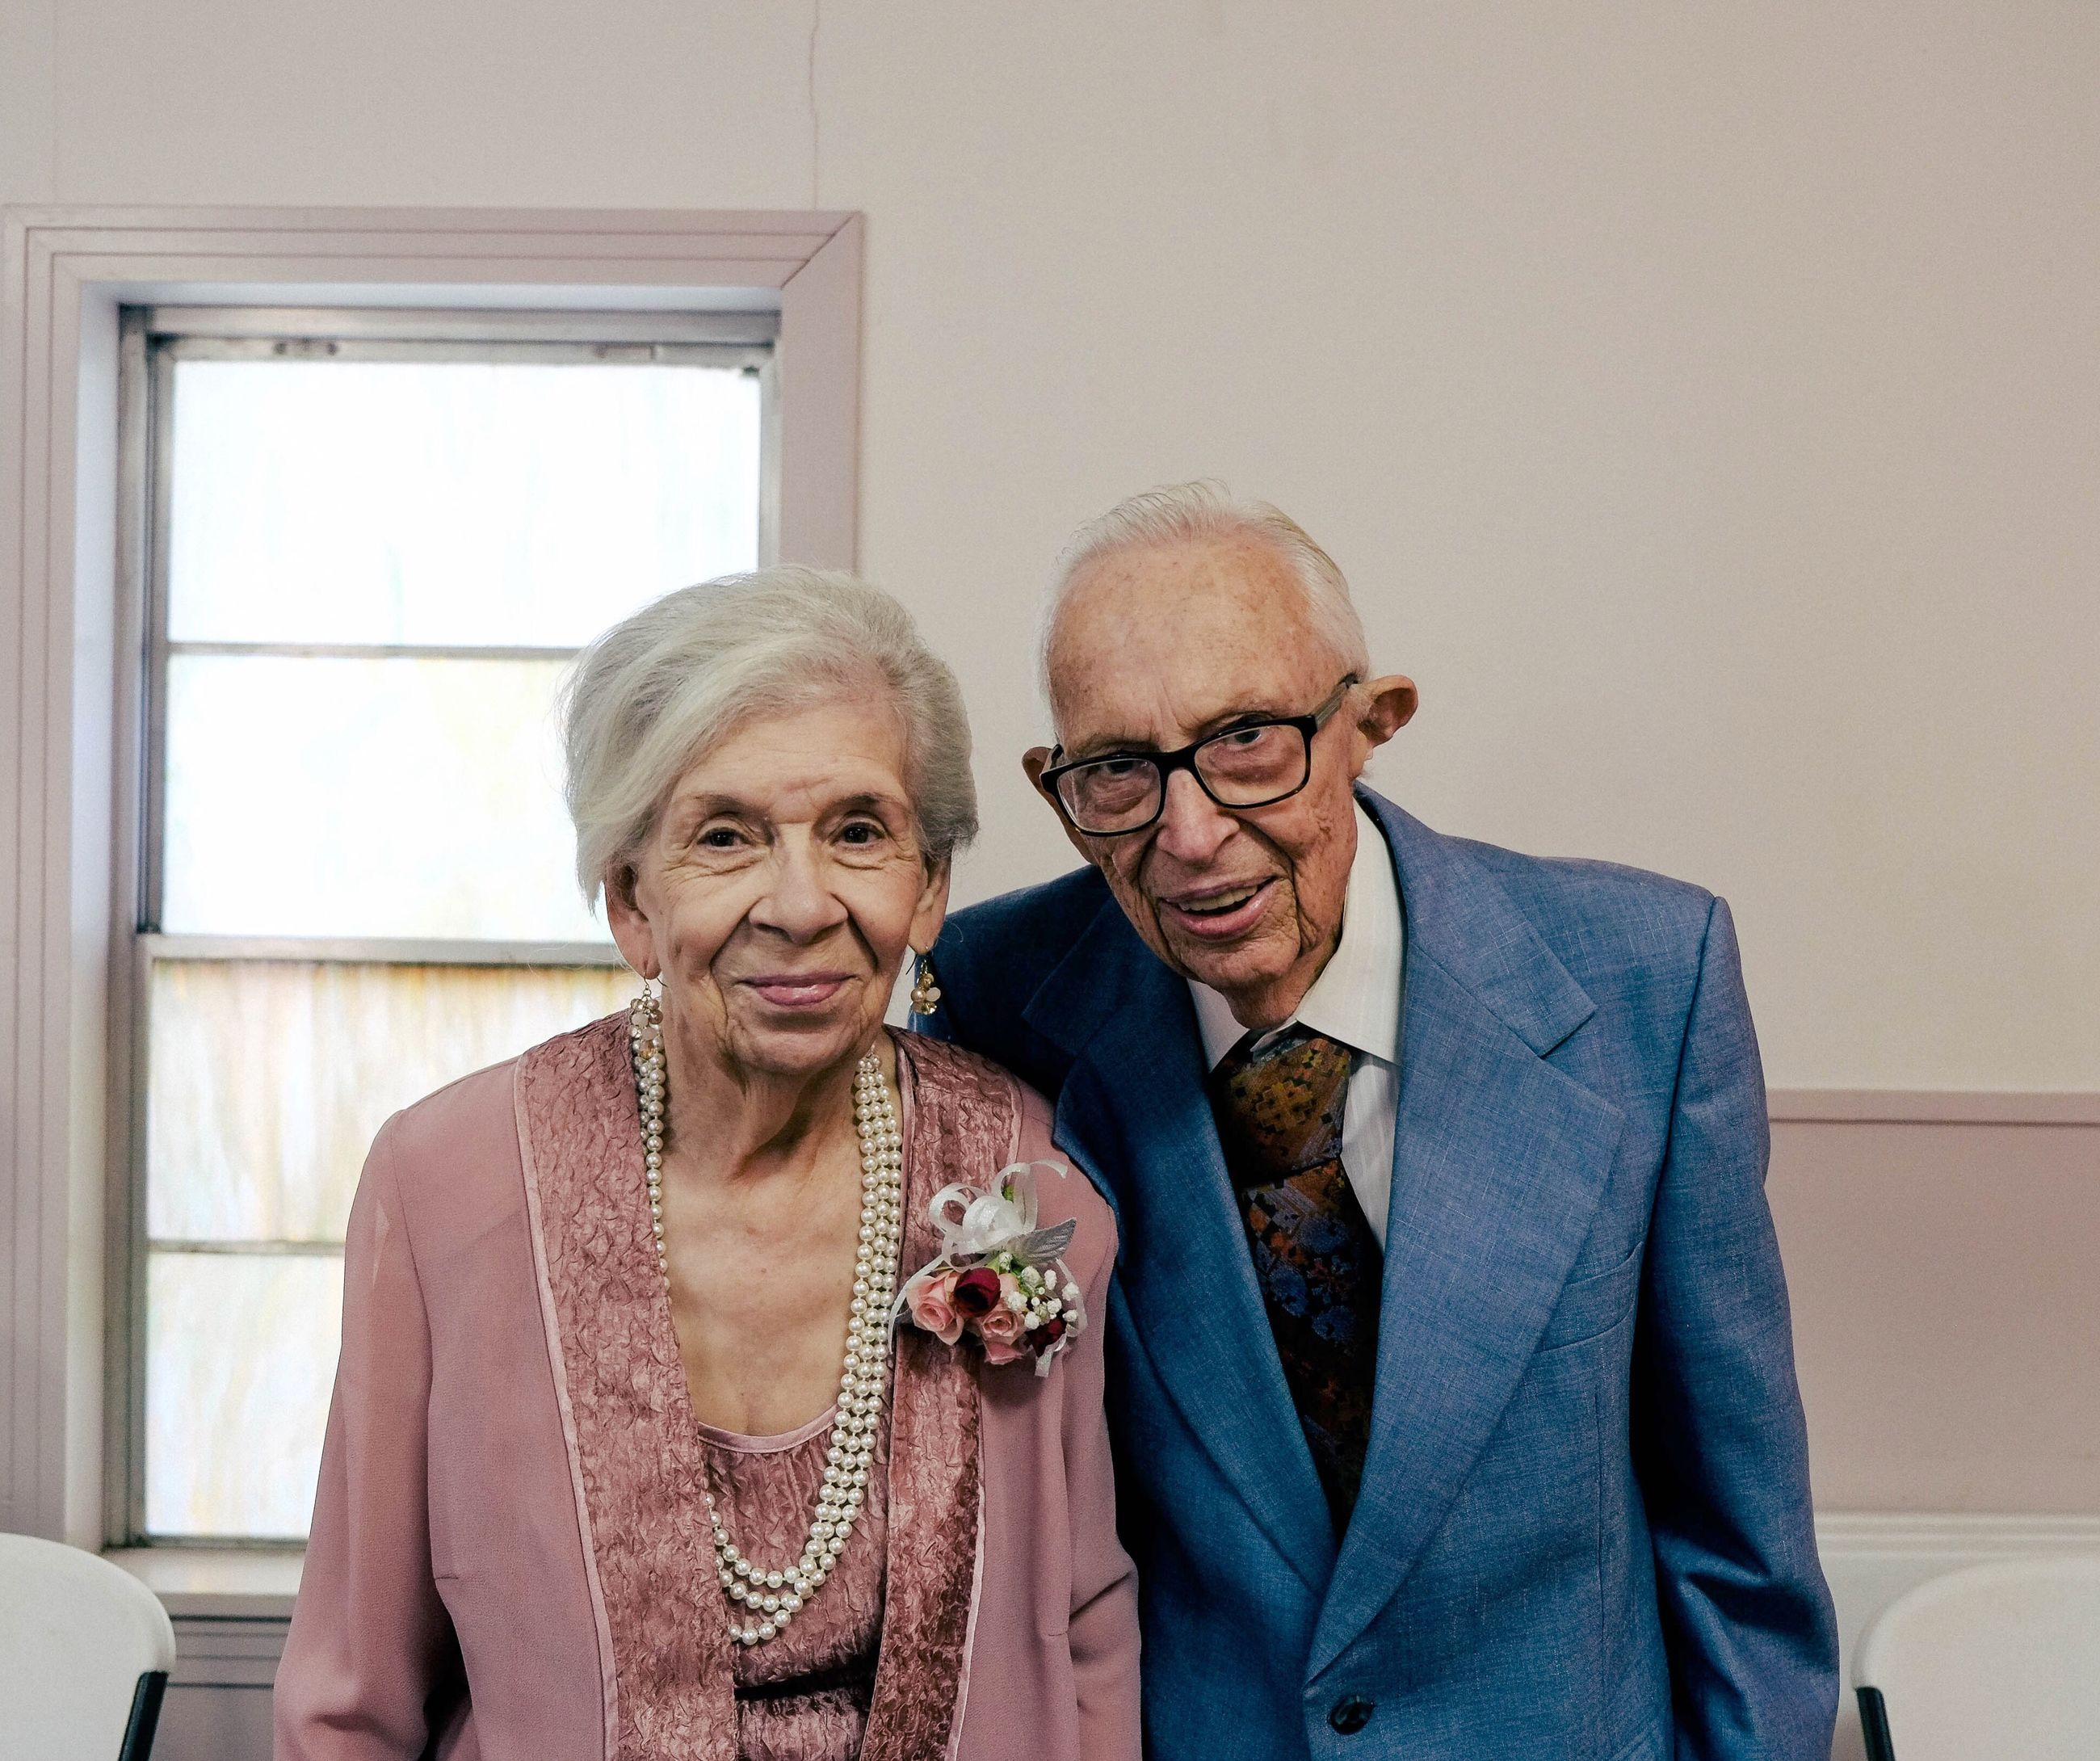 senior adult, two people, portrait, looking at camera, senior men, adults only, eyeglasses, happiness, smiling, adult, togetherness, beard, men, people, curly hair, retirement, only men, human body part, time, senior couple, young adult, indoors, blazer - jacket, day